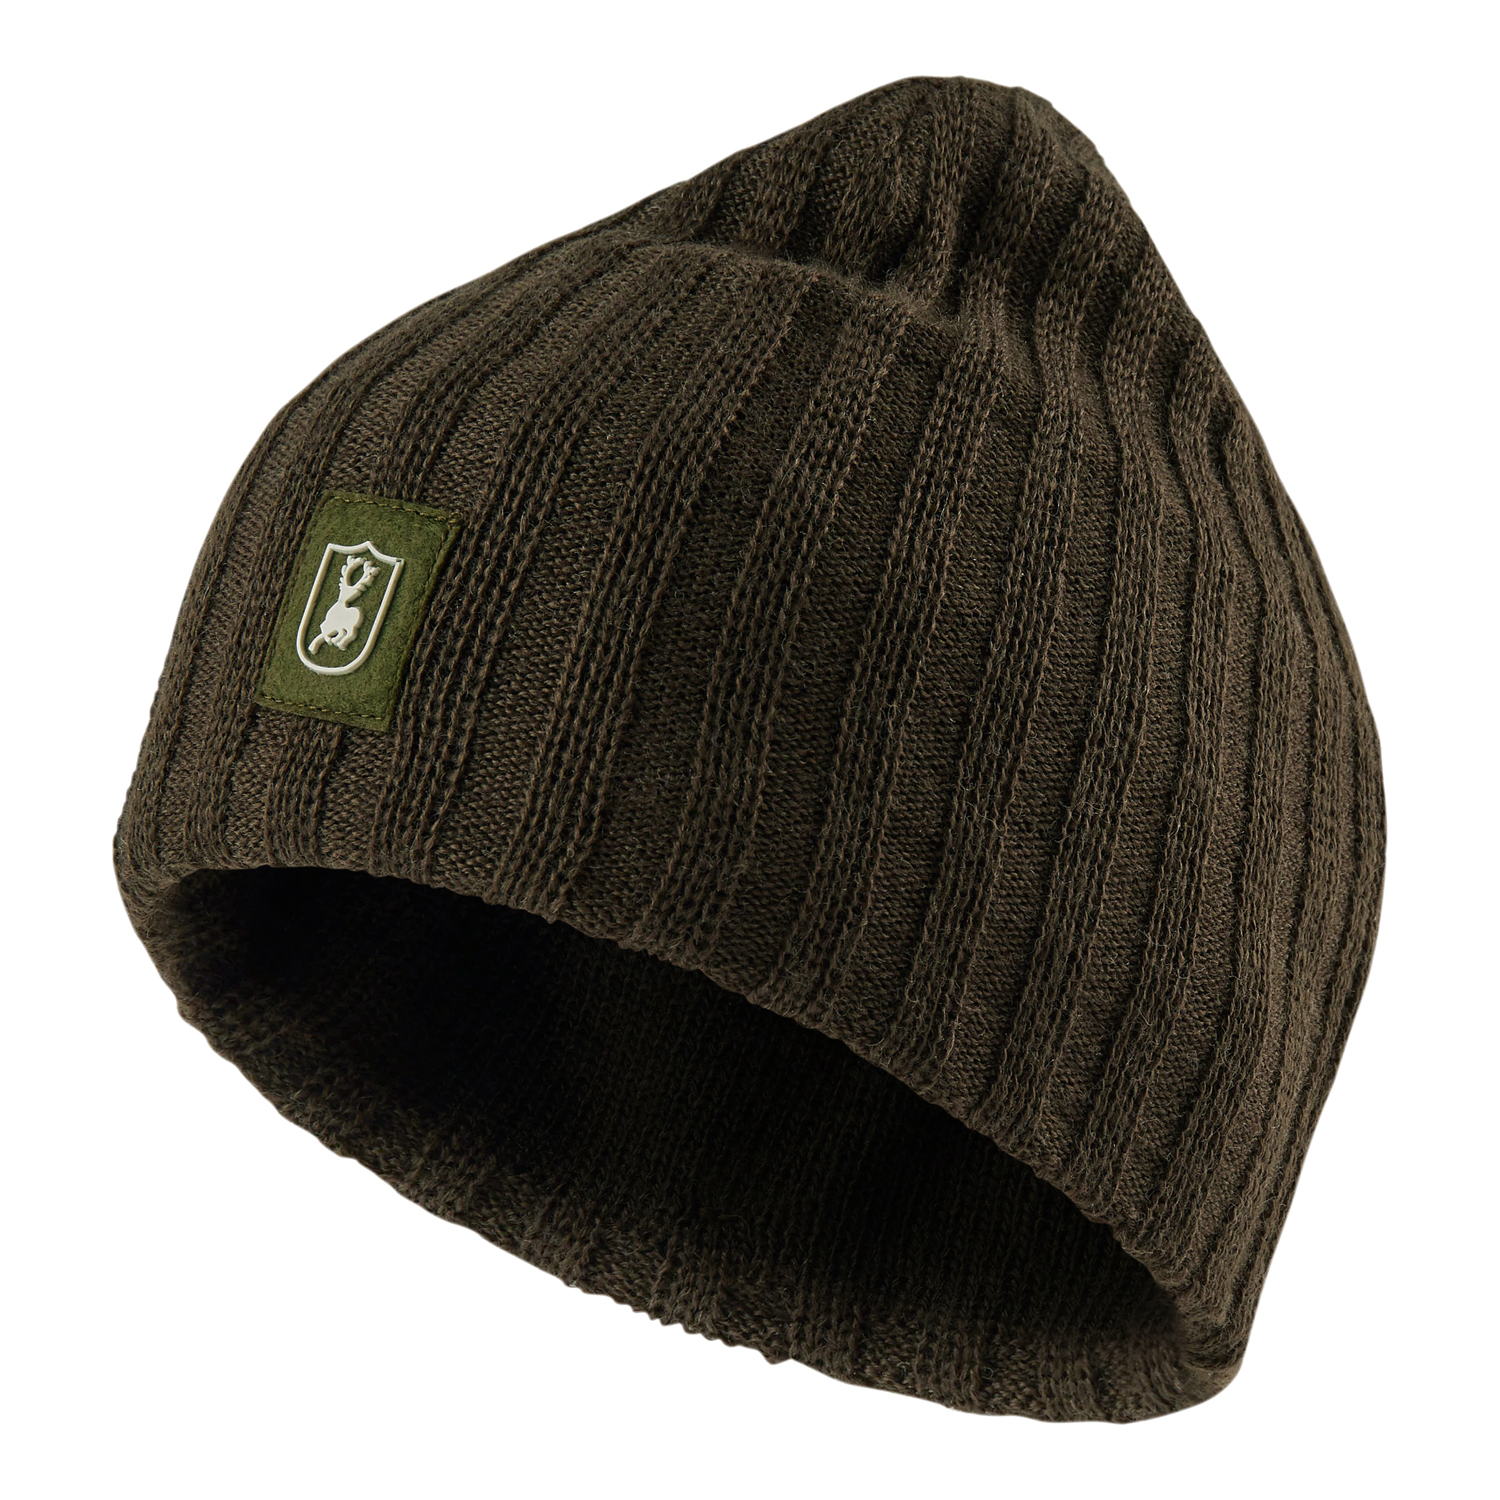 Recon Knitted Beanie - Deerhunter e912eed0213